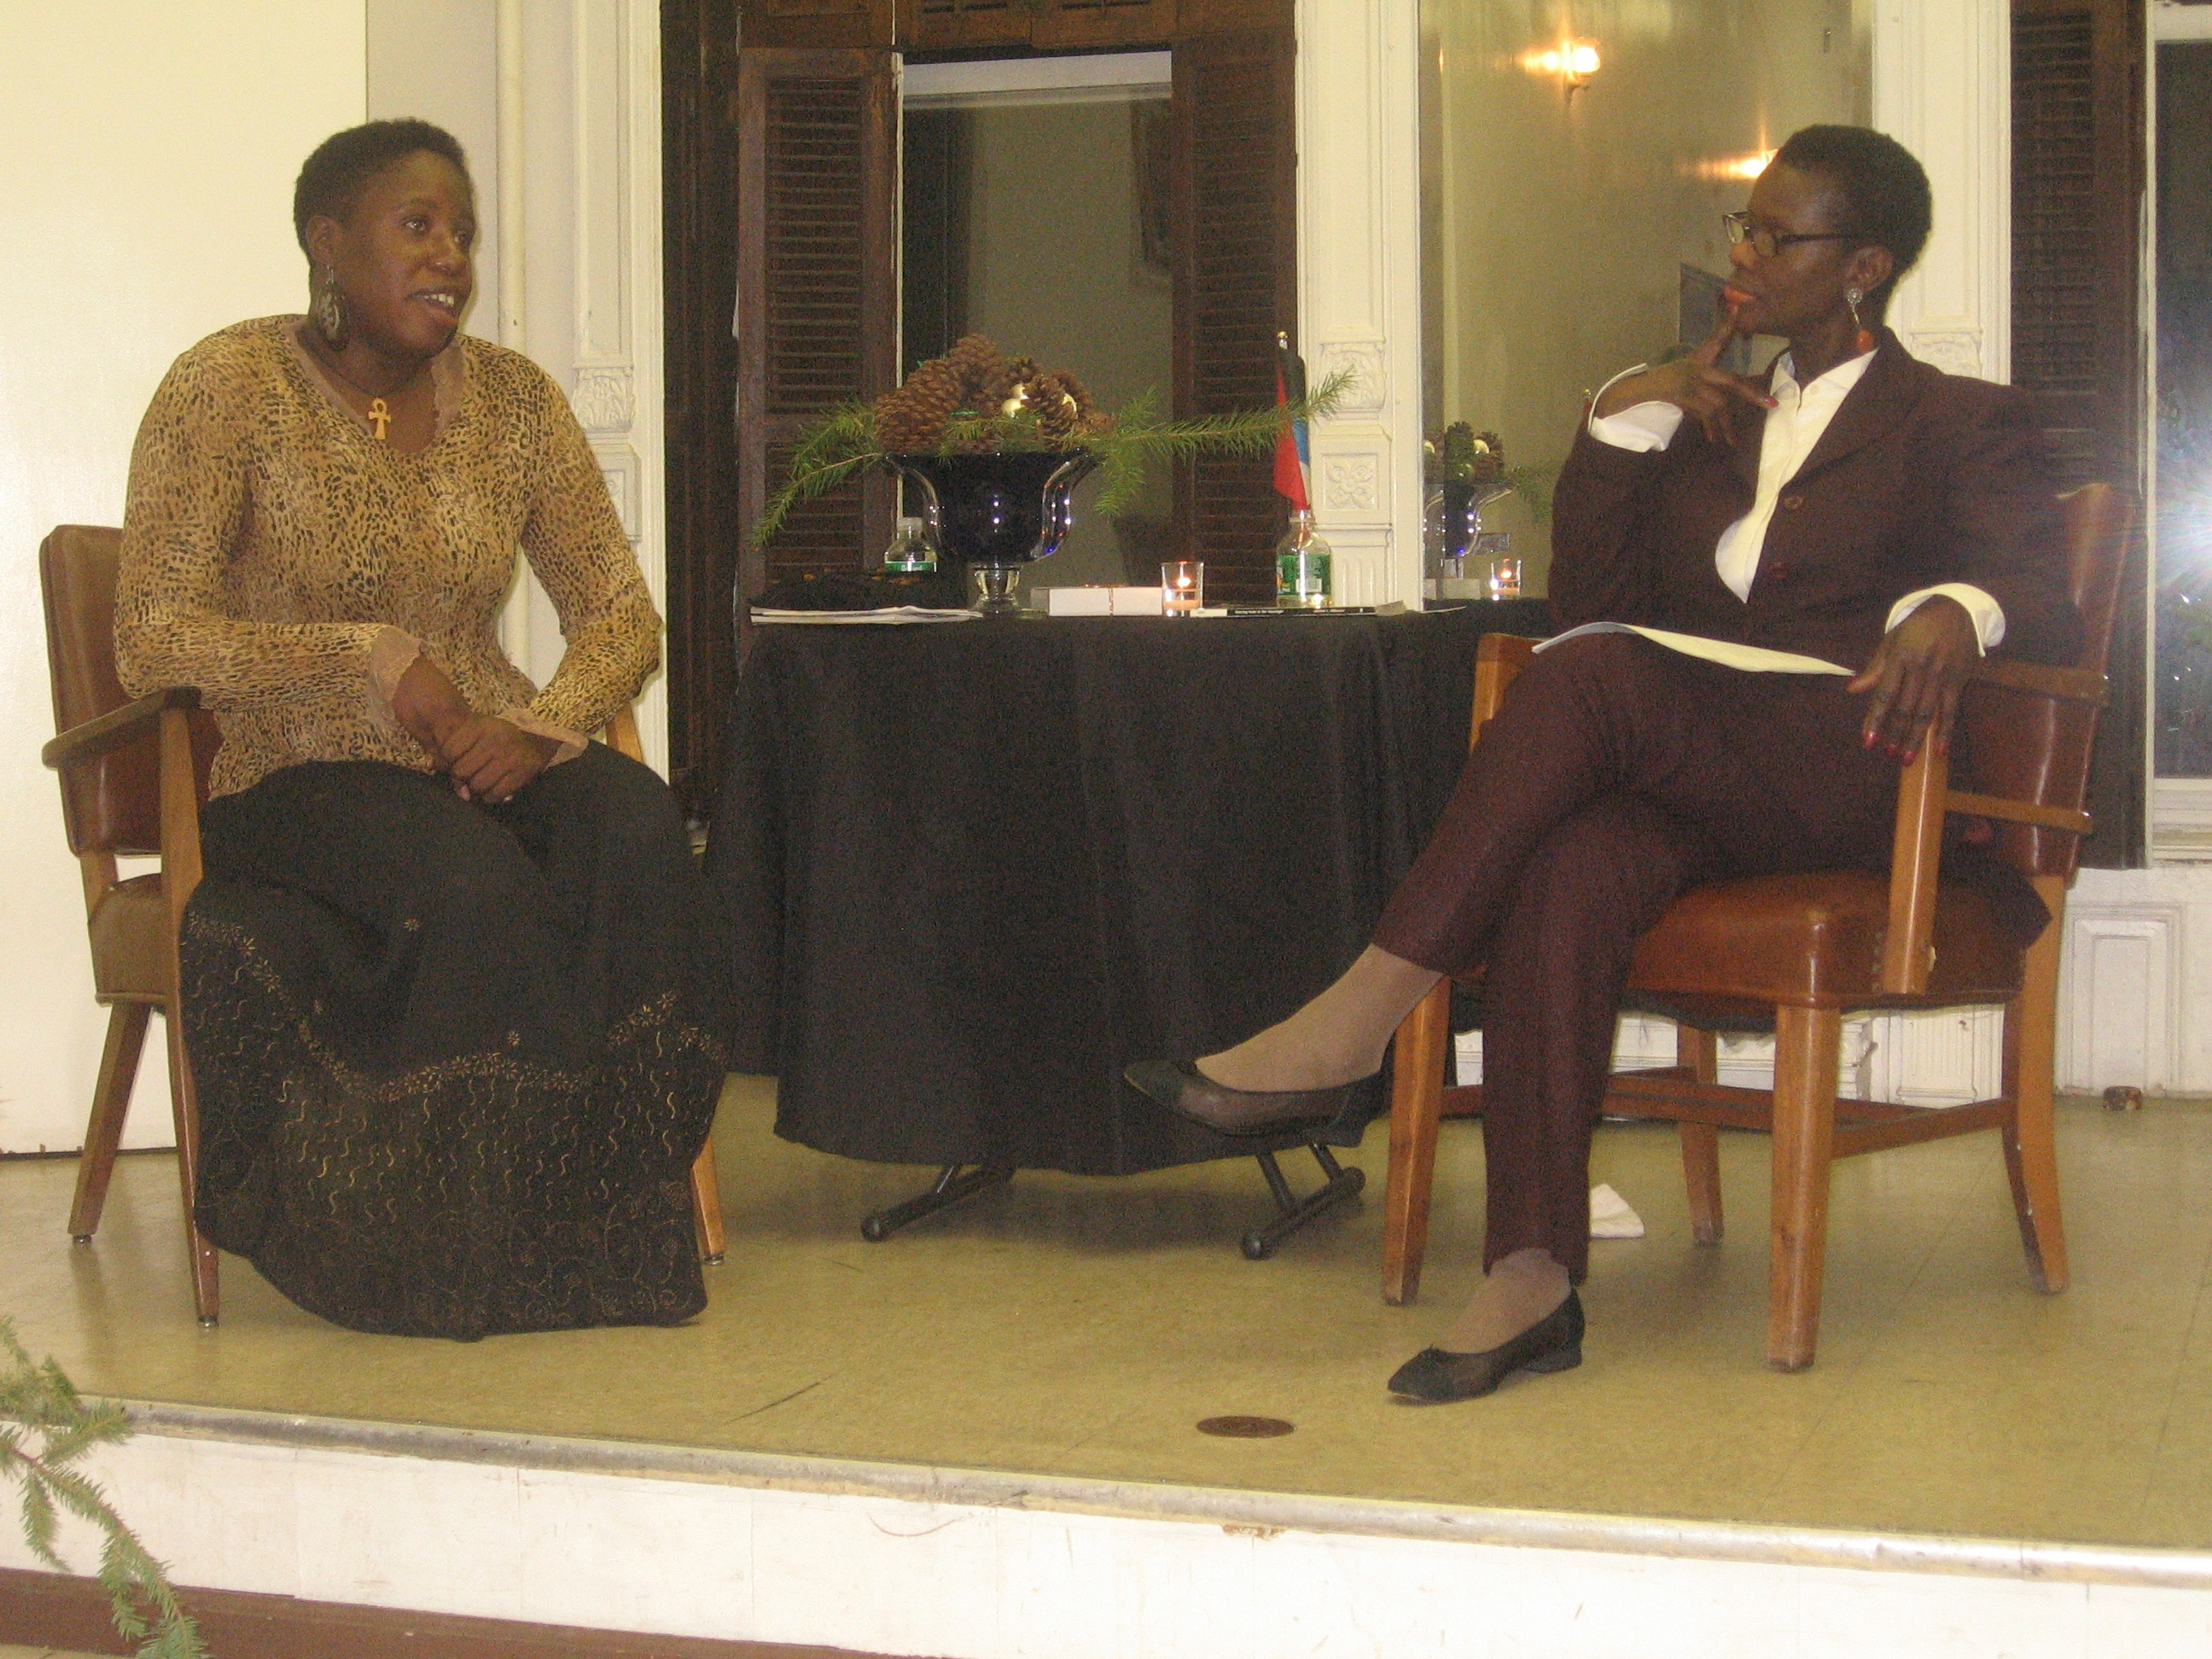 The inaugural Friends of Antigua Public Library author-in-residence programme in New York, 2007. My interviewer for the evening was Monica Matthew, author of Journeycakes.